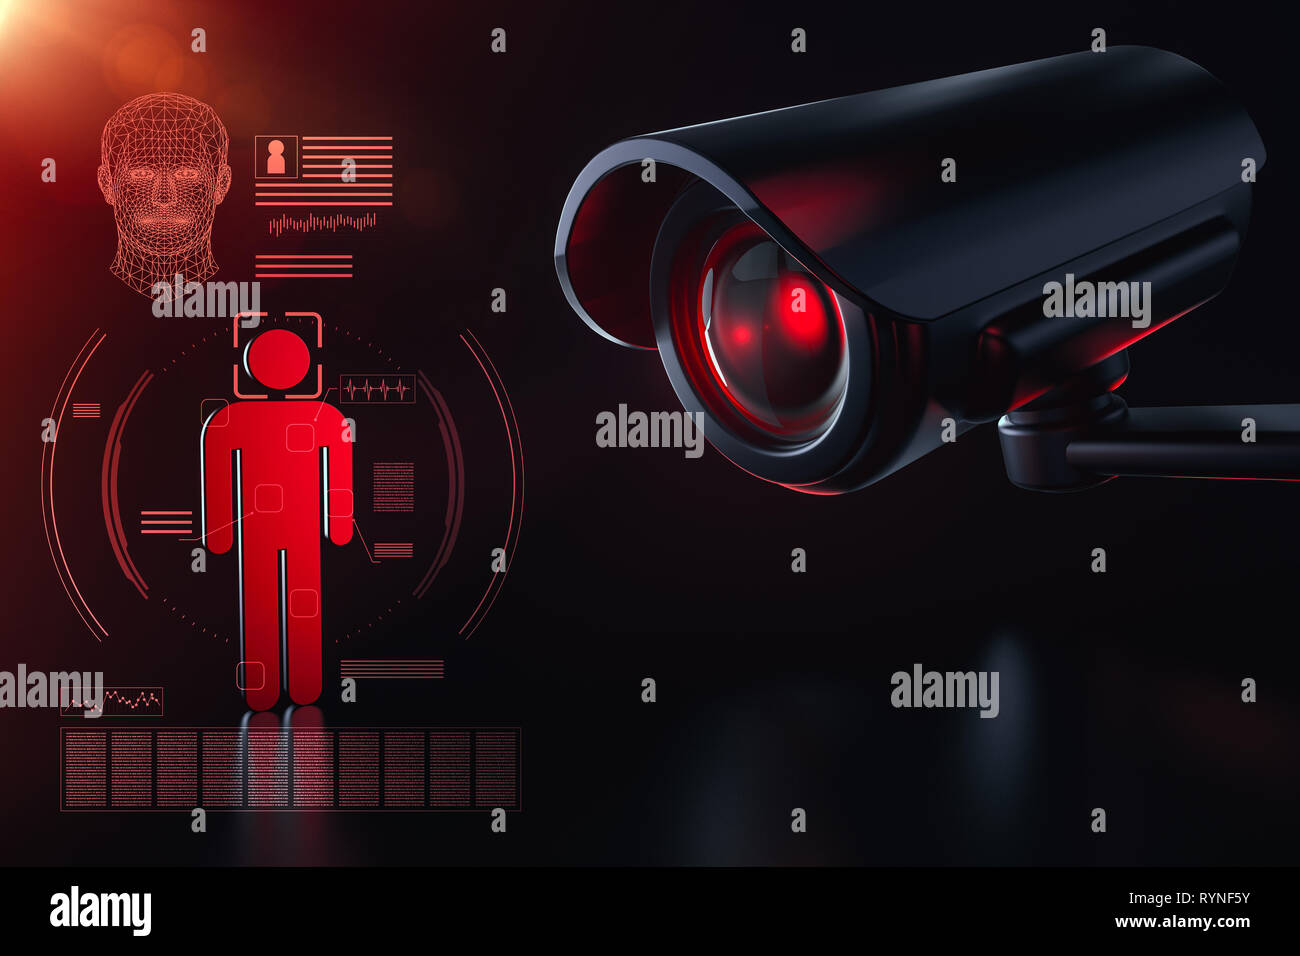 Cctv is checking information about citizen in surveillance security system concept. Big brother is watching you concept. 3D rendering - Stock Image